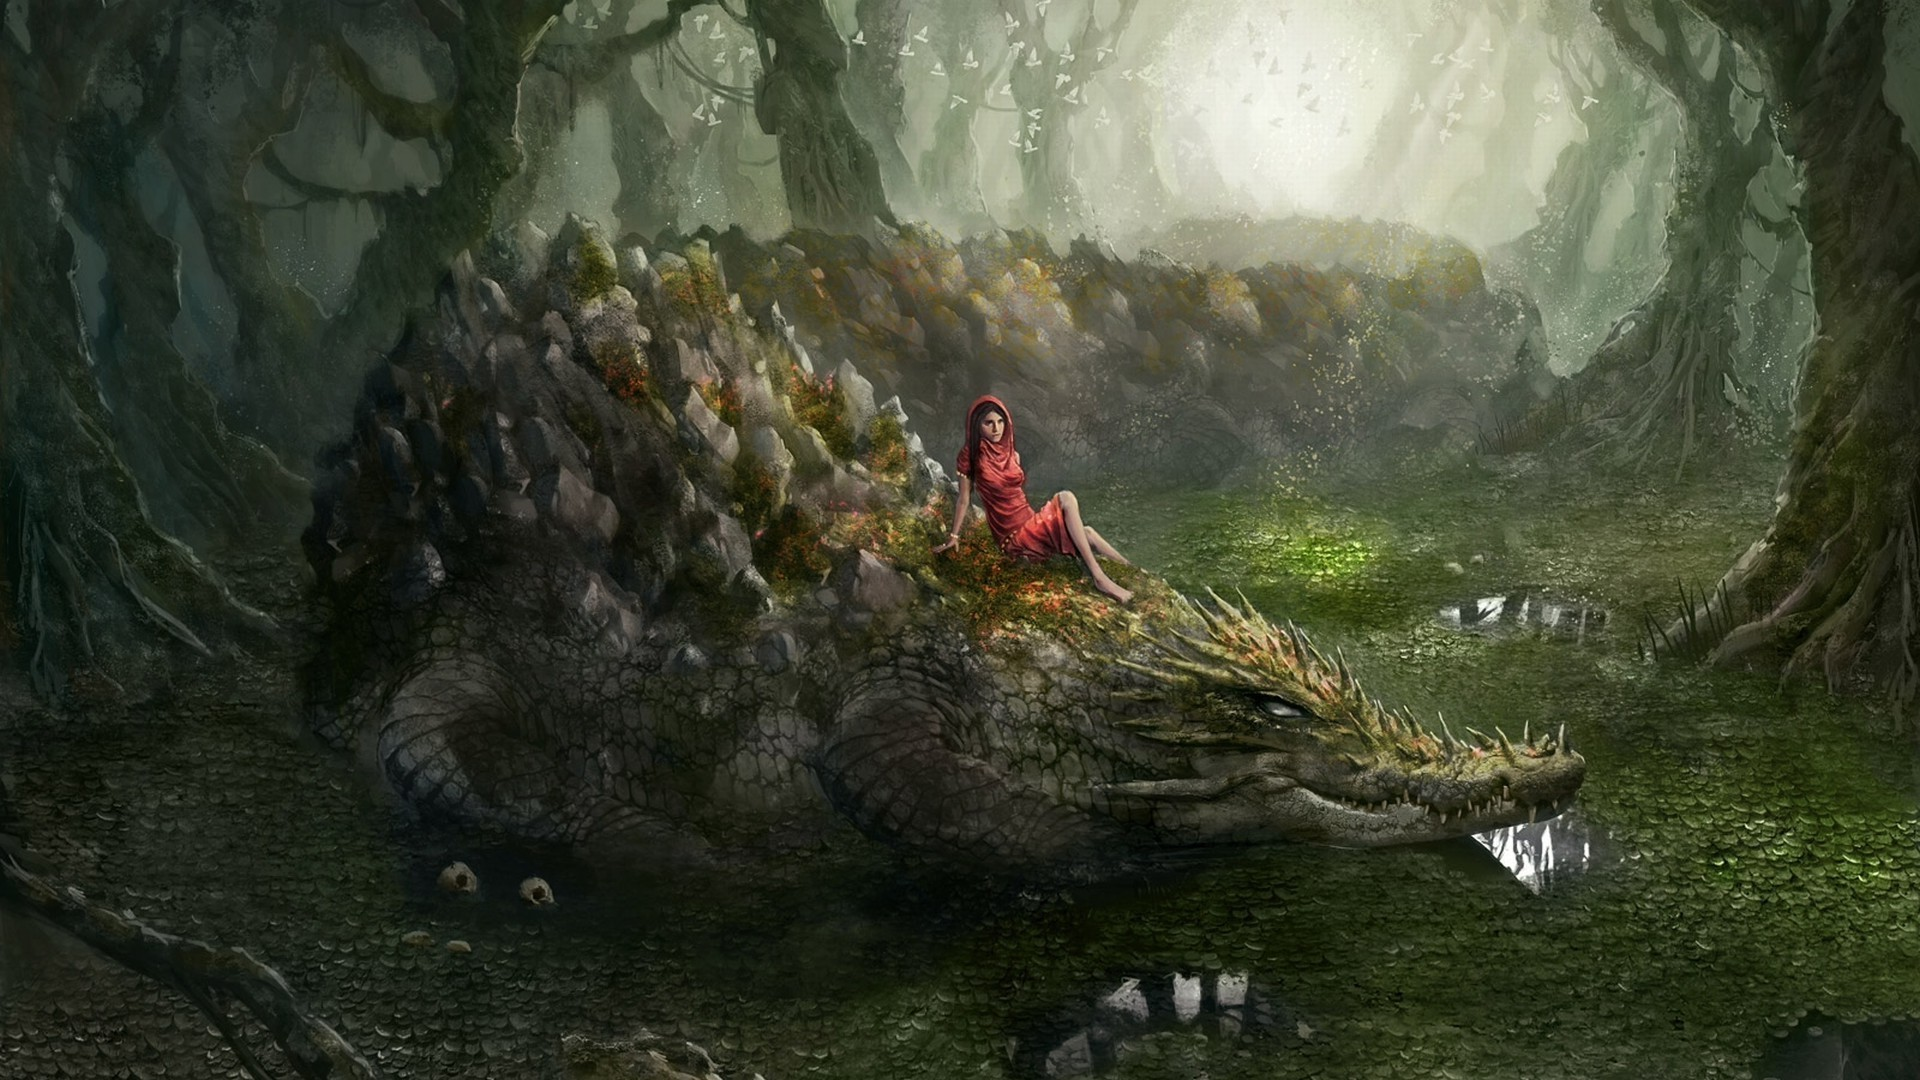 The girl on the crocodile. Android wallpapers for free